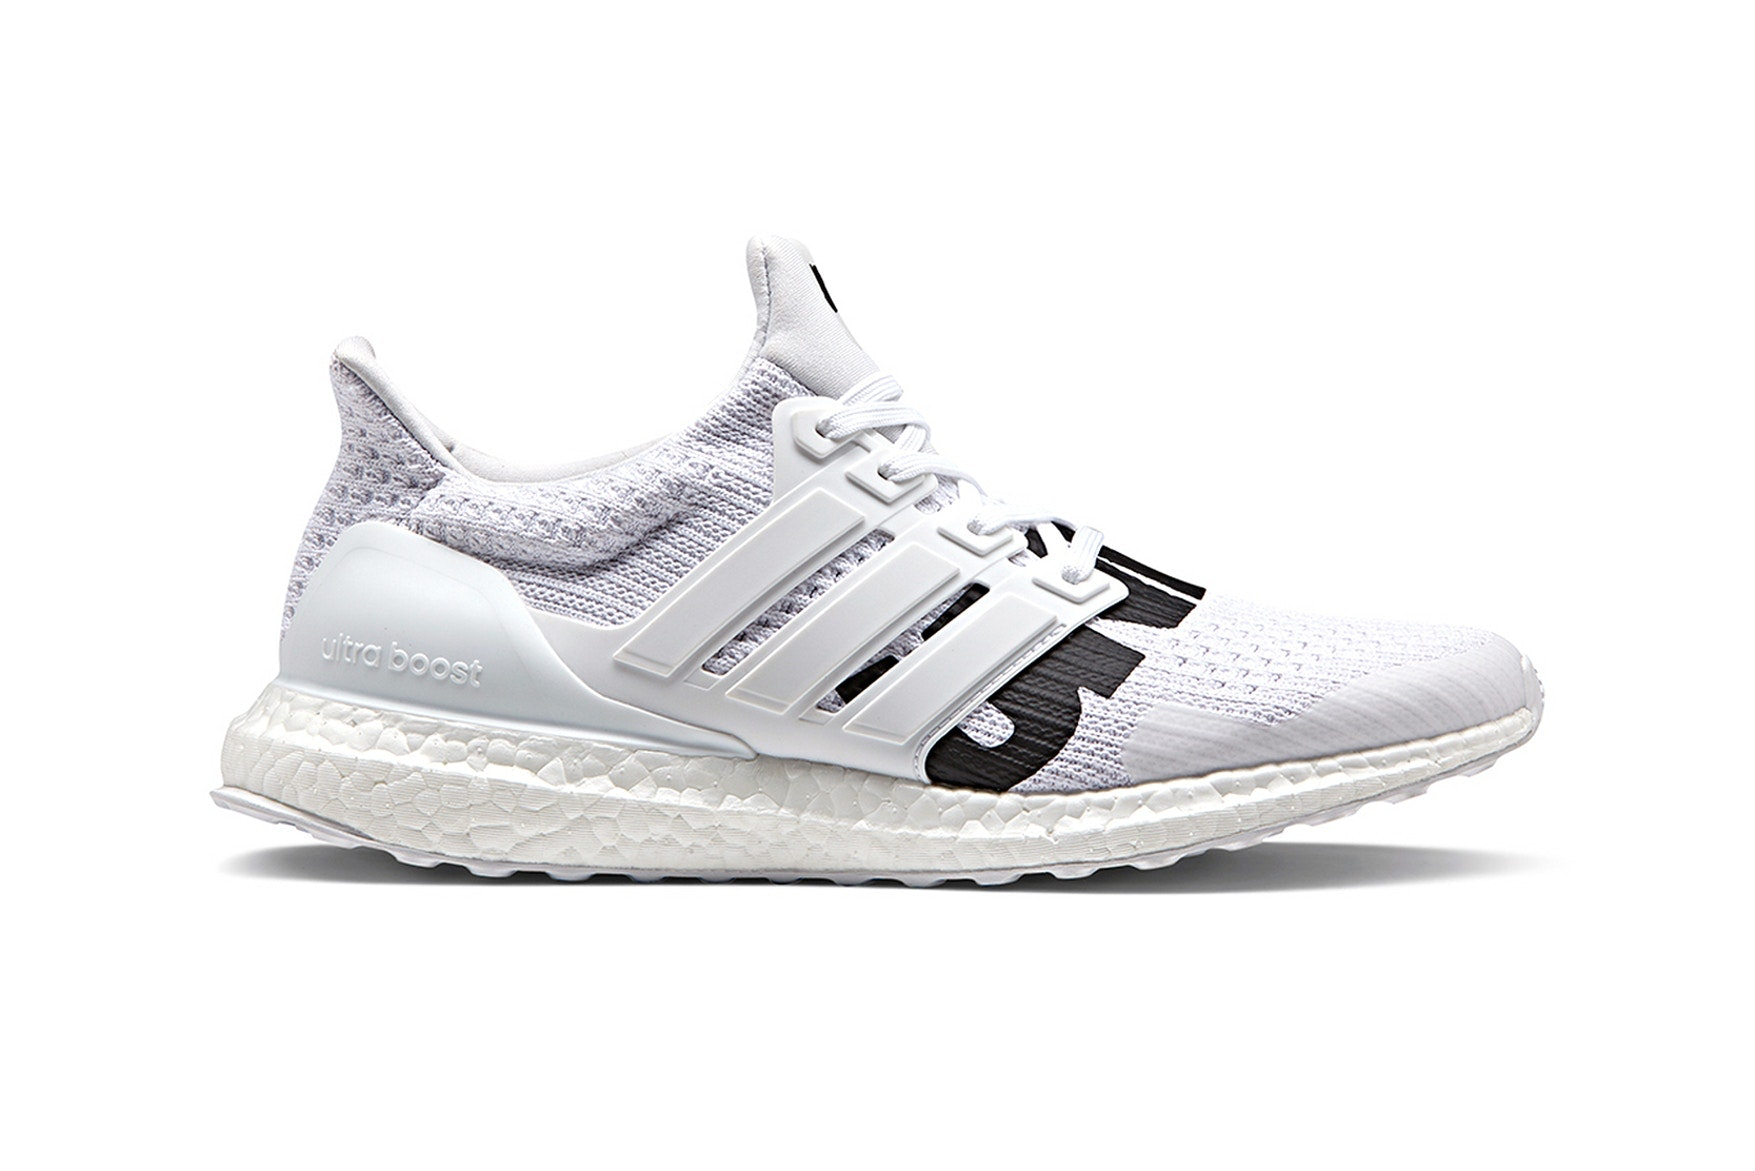 adidas Ultra Boost 1.0 UNDFTD White